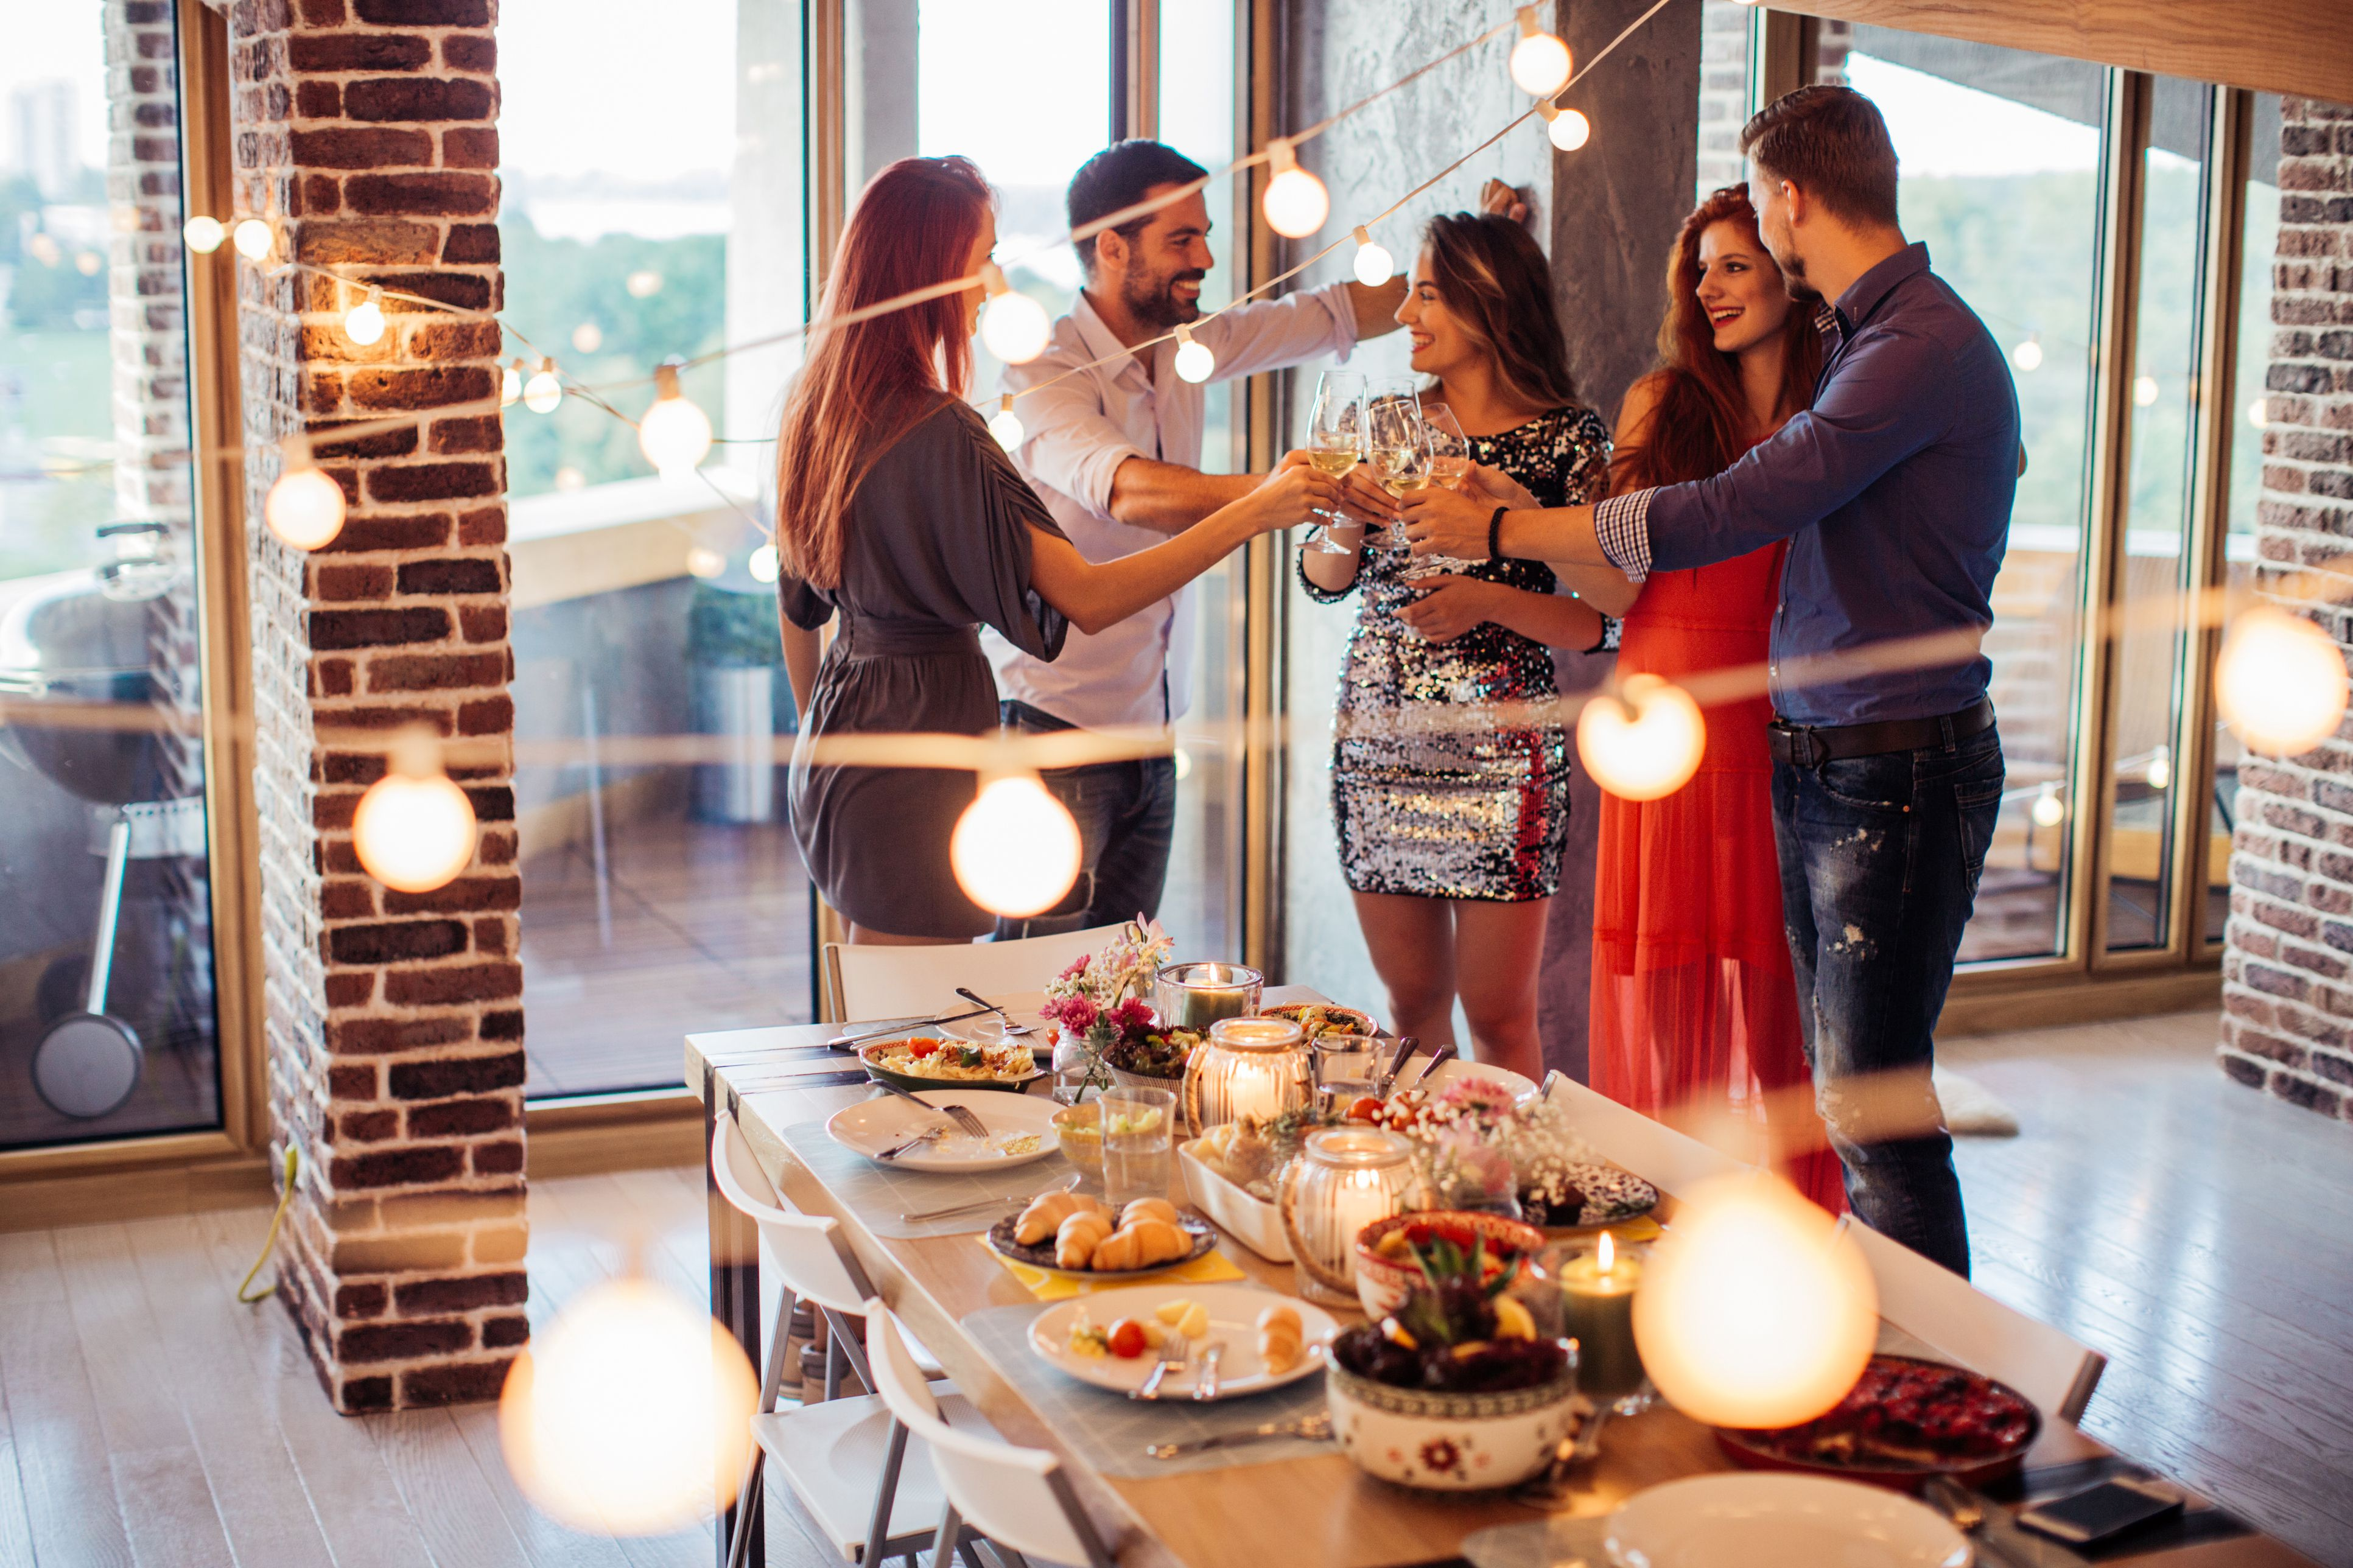 Housewarming Party Ideas That Will Make Your New Space a Home